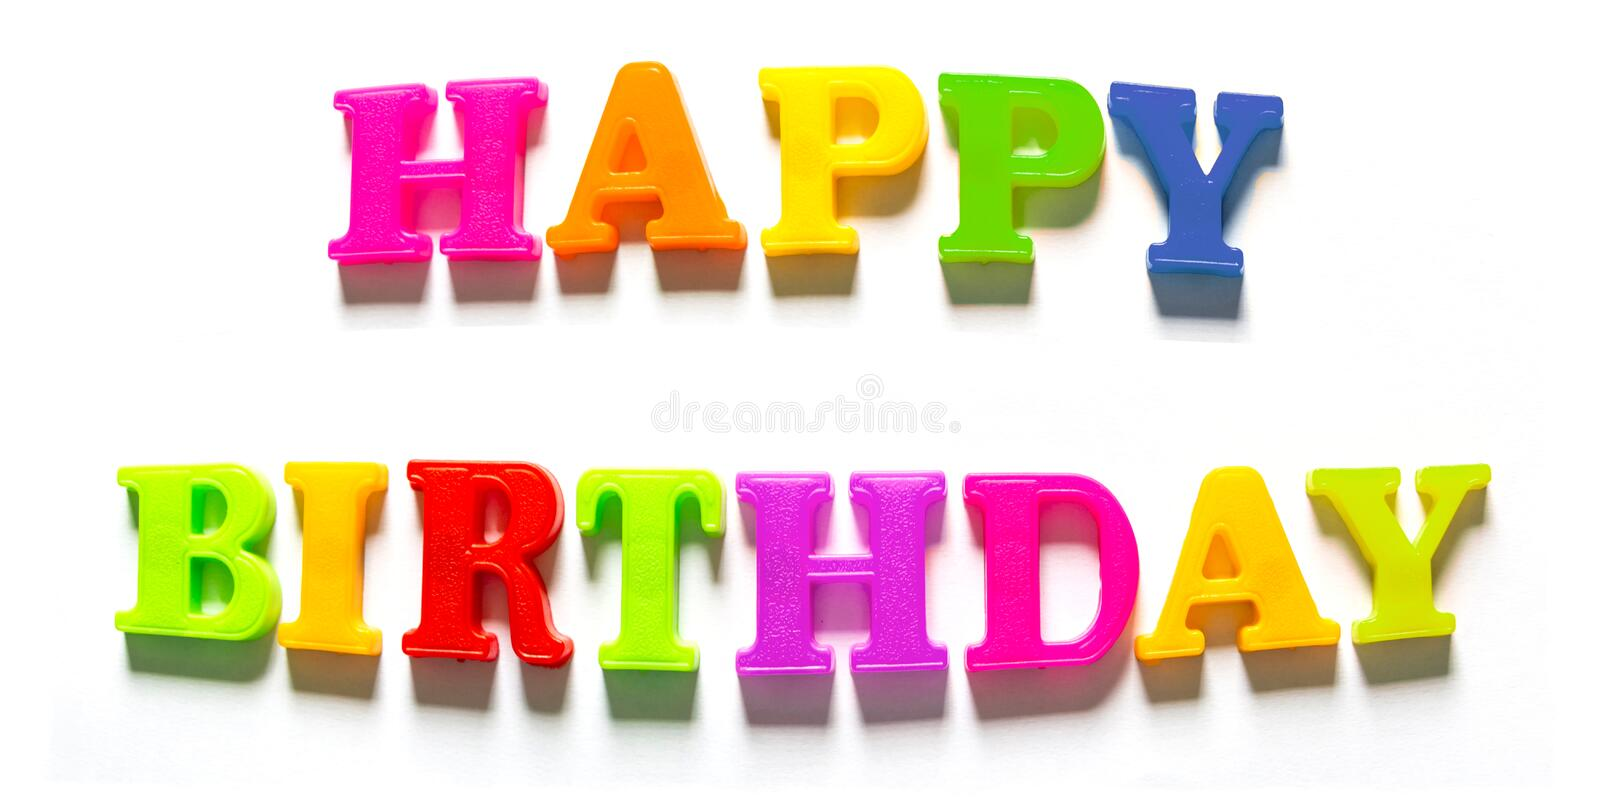 Colorful Happy Birthday Capital Letters in White Background. Image of happy birthday words made from colourful plastic letter magnets with inflating effect in stock images